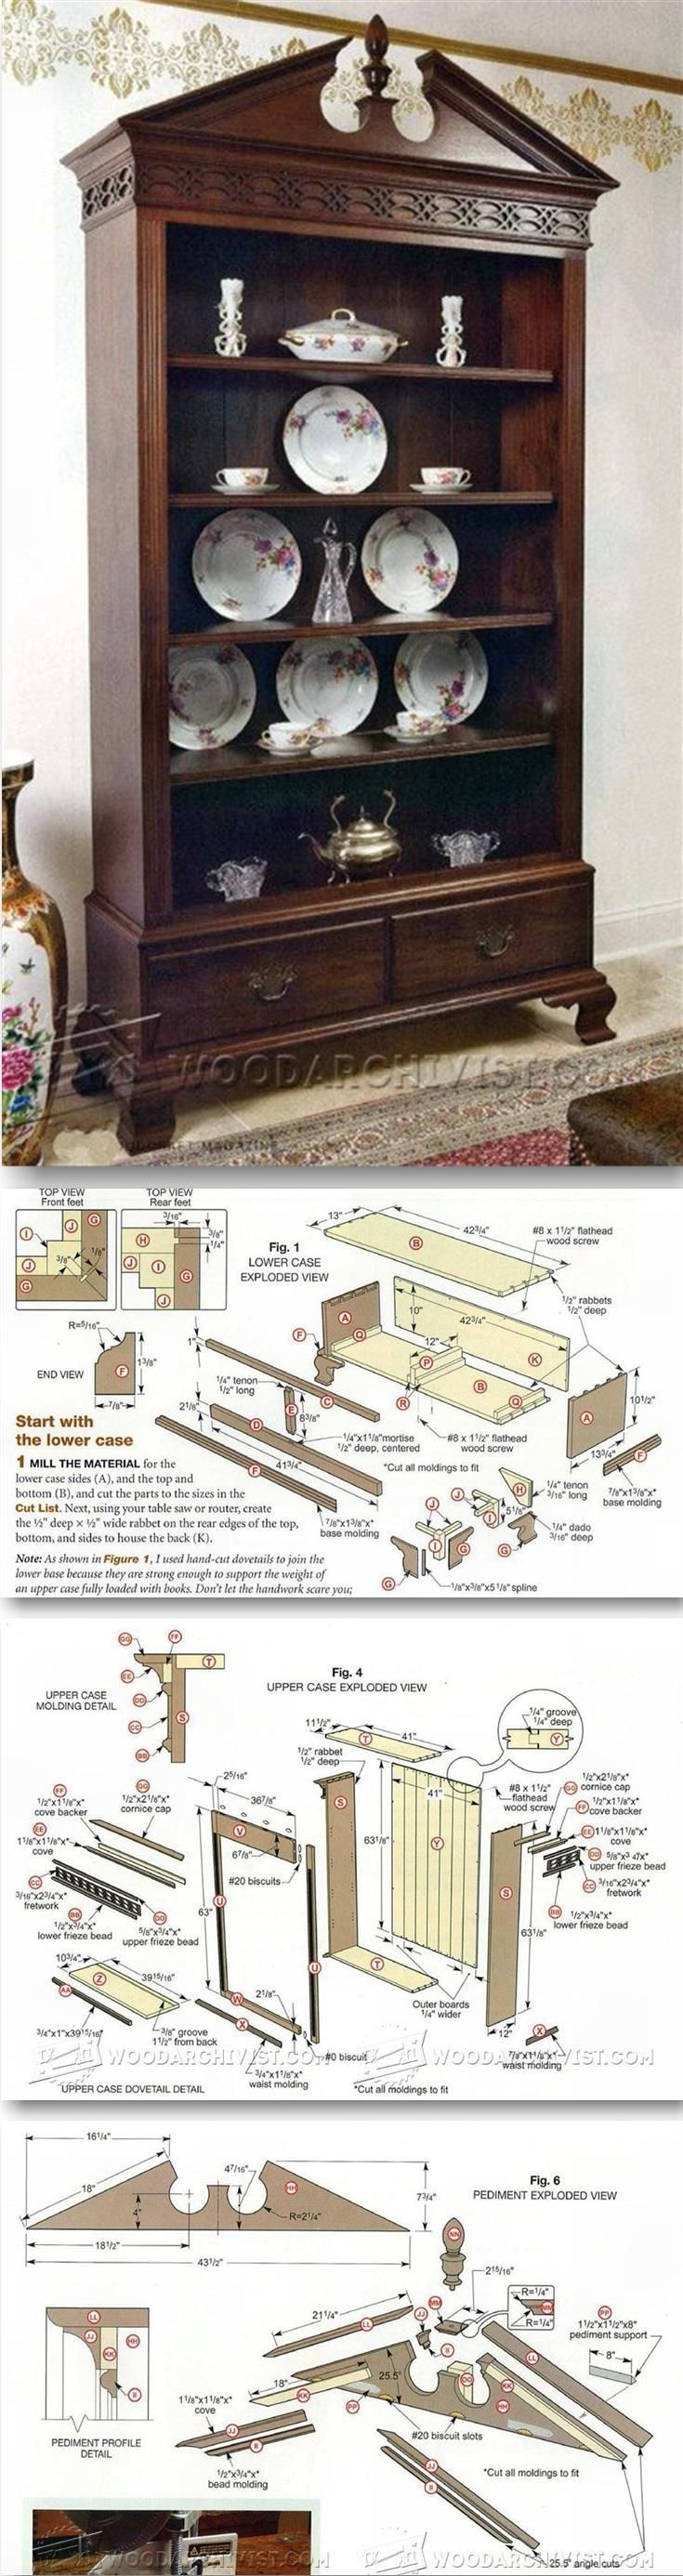 Classiс Display Case Plans - Woodworking Plans and Projects   WoodArchivist.com